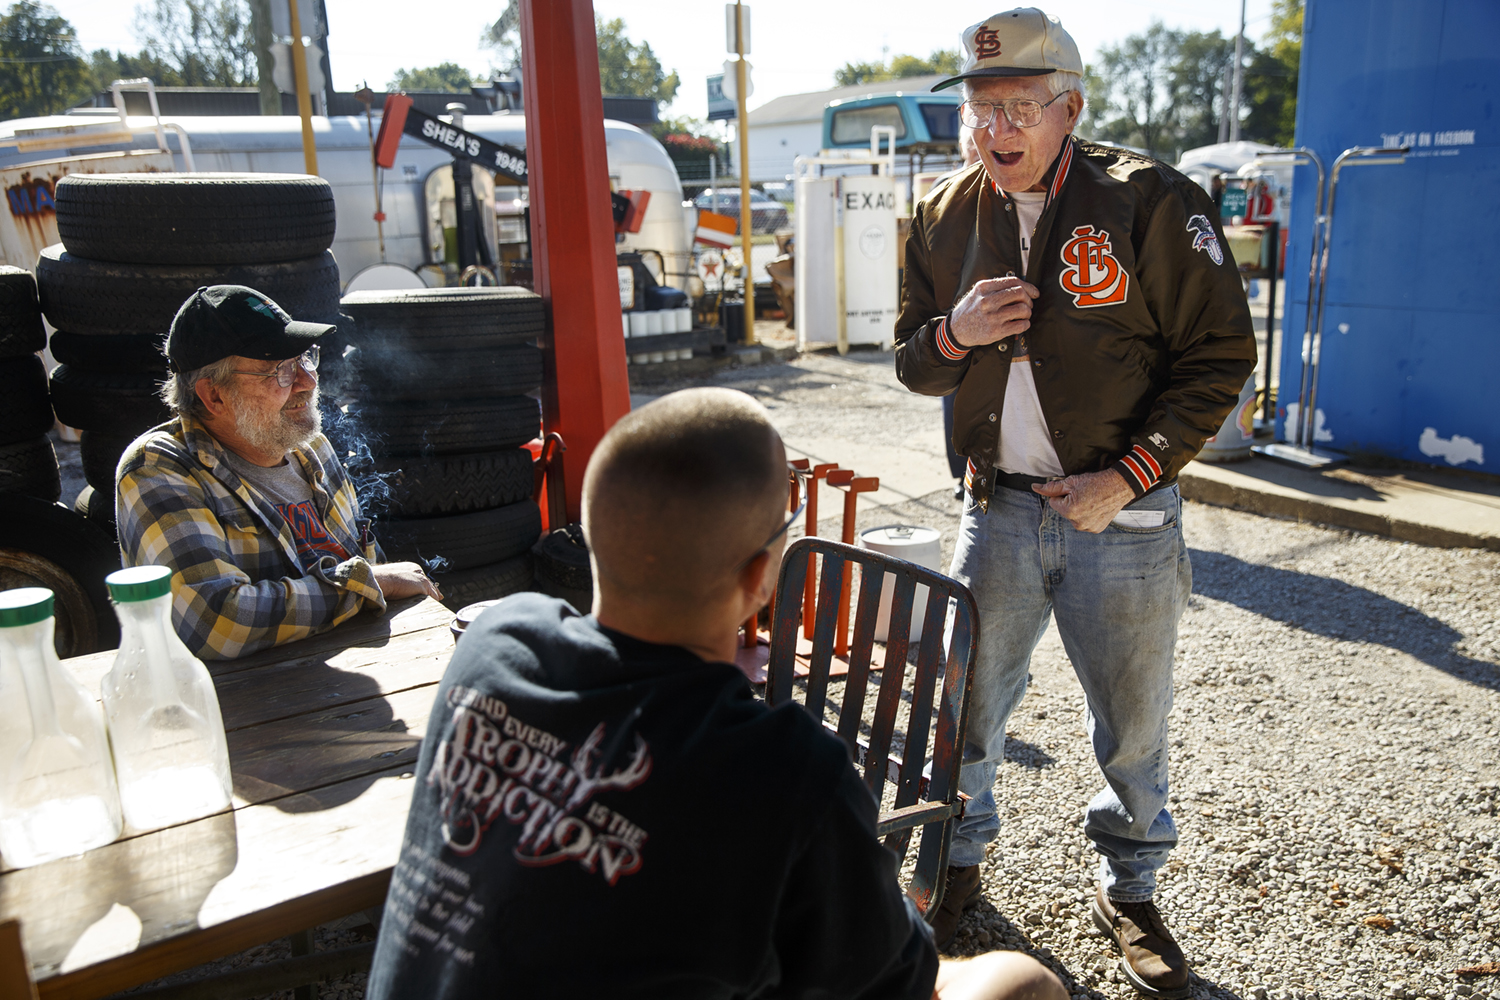 """""""I wouldn't walk across the street to see the Cardinals,"""" Bob McLean scoffed as he showed Jared Baker his St. Louis Browns jacket while visiting at Shea's Gas Station and Museum in Springfield Saturday, Oct. 10, 2015. McLean, and his son John, left, were at Shea's for an auction of some of the contents of Shea's. The Browns moved to Baltimore after the 1953 baseball season. Ted Schurter/The State Journal-Register"""